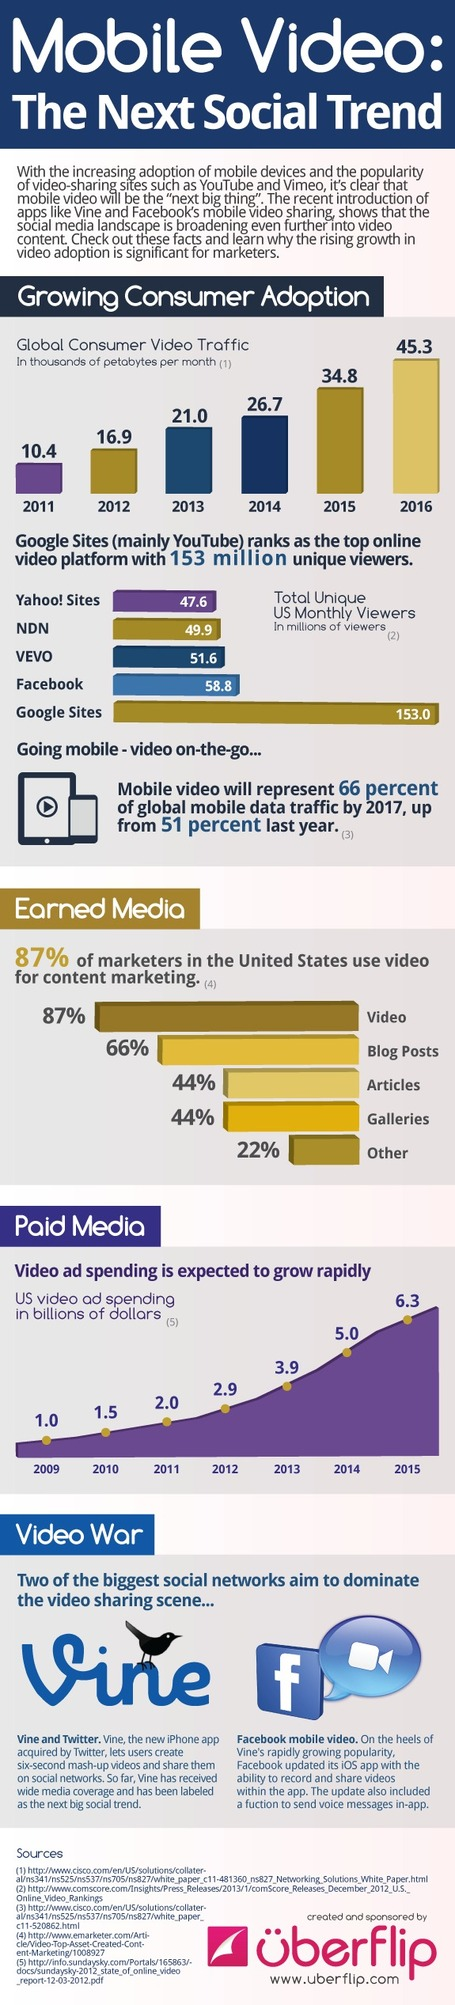 Is Mobile Video The Next Big Thing In Social Media? [INFOGRAPHIC] | E-Learning-Inclusivo (Mashup) | Scoop.it